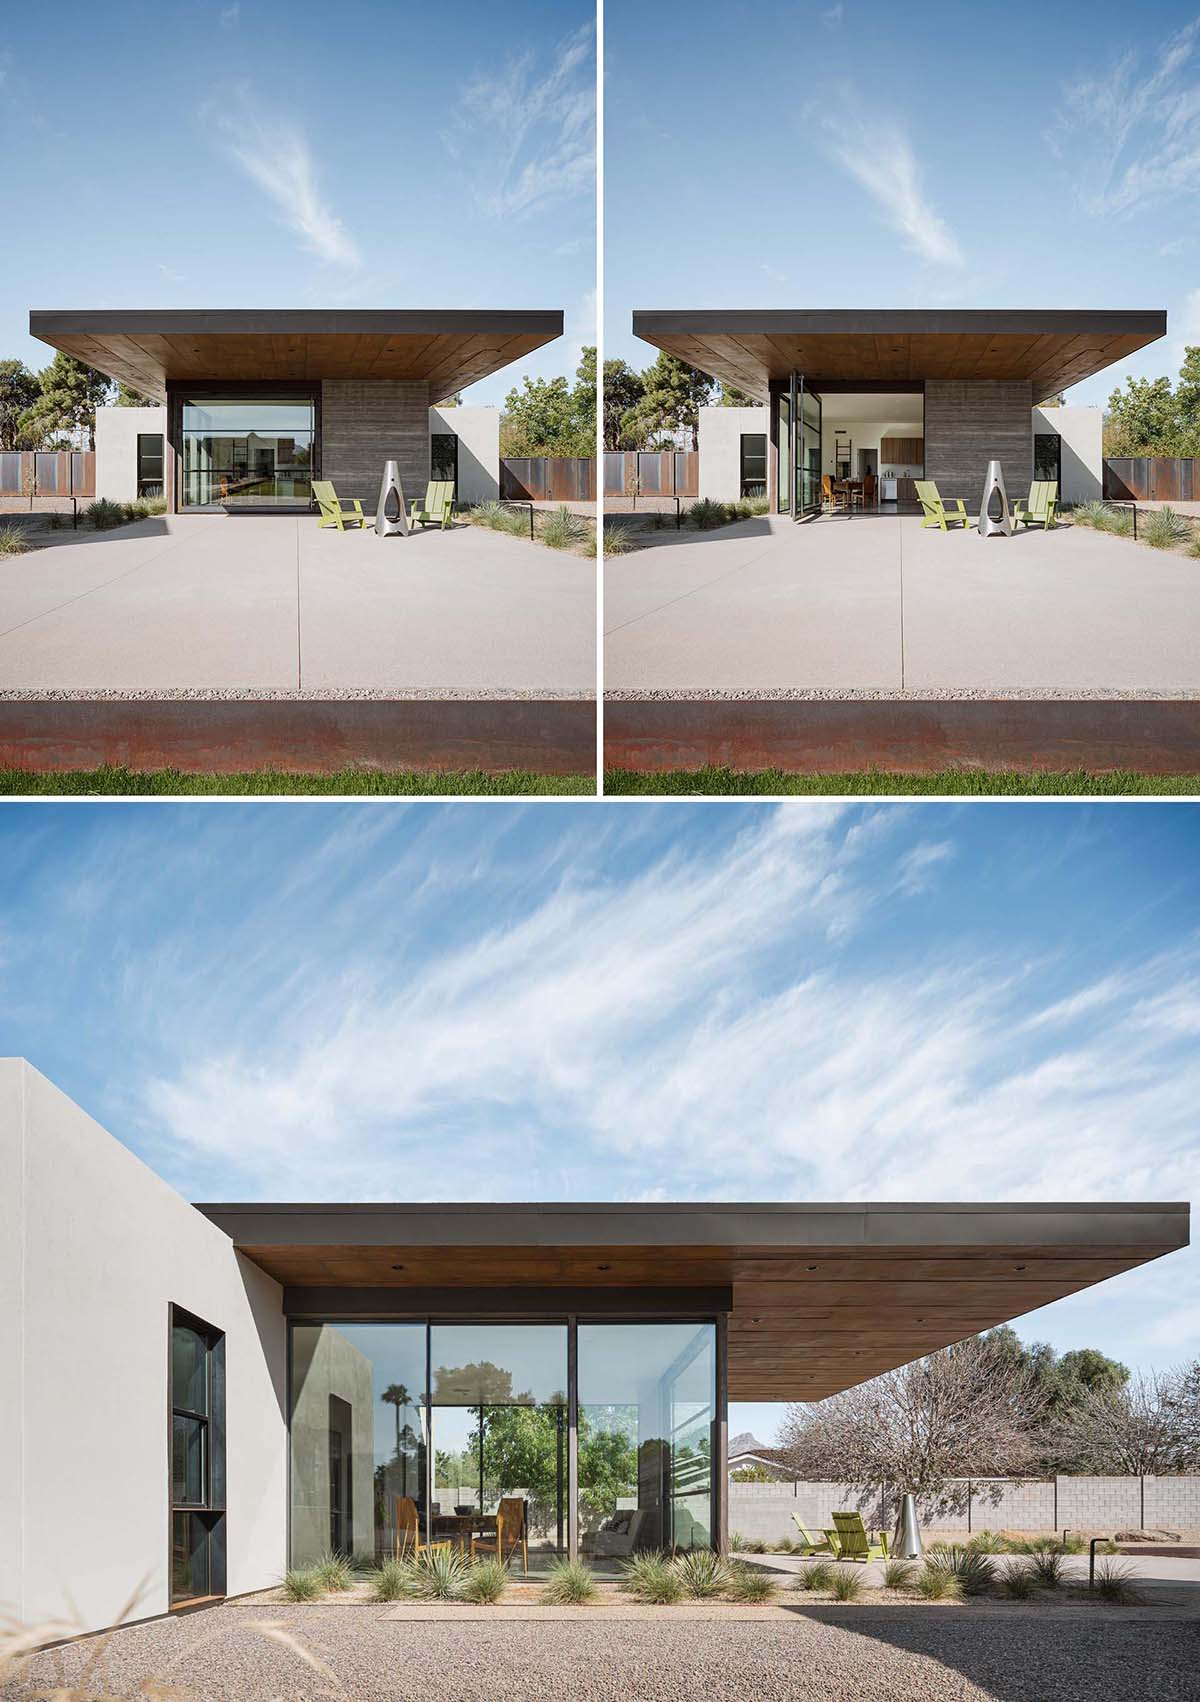 A small and modern home with a cantilevered roof that extends to create shade for the patio.